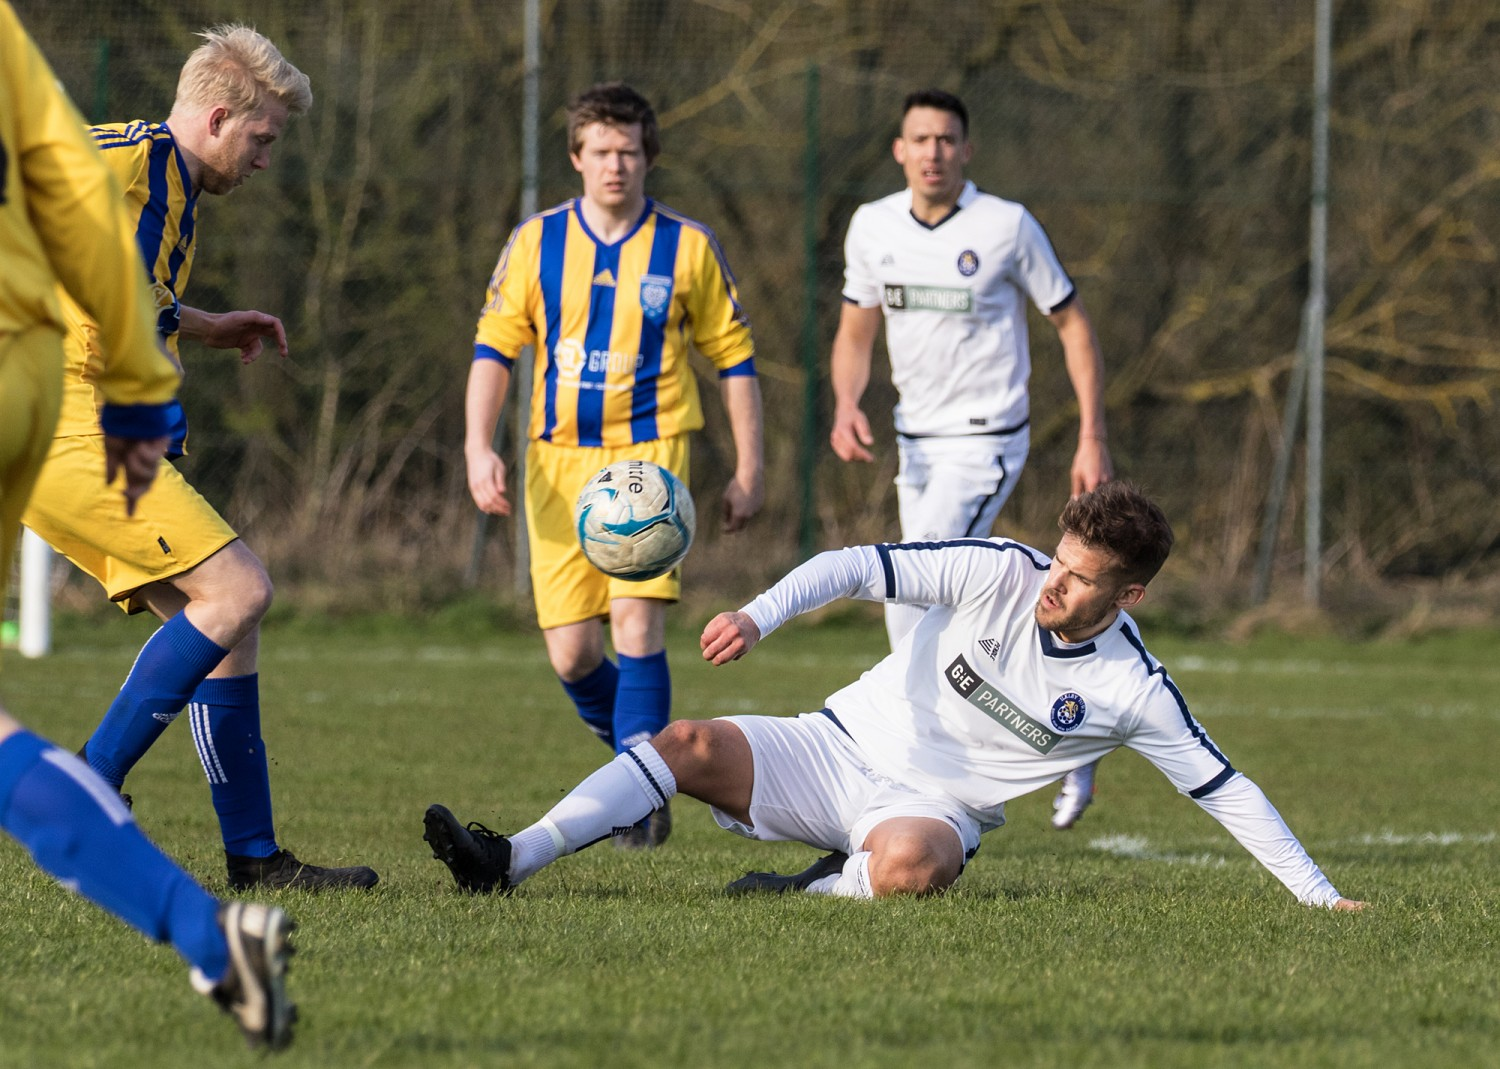 Six of the best as Ilkley Town continue their 100% start